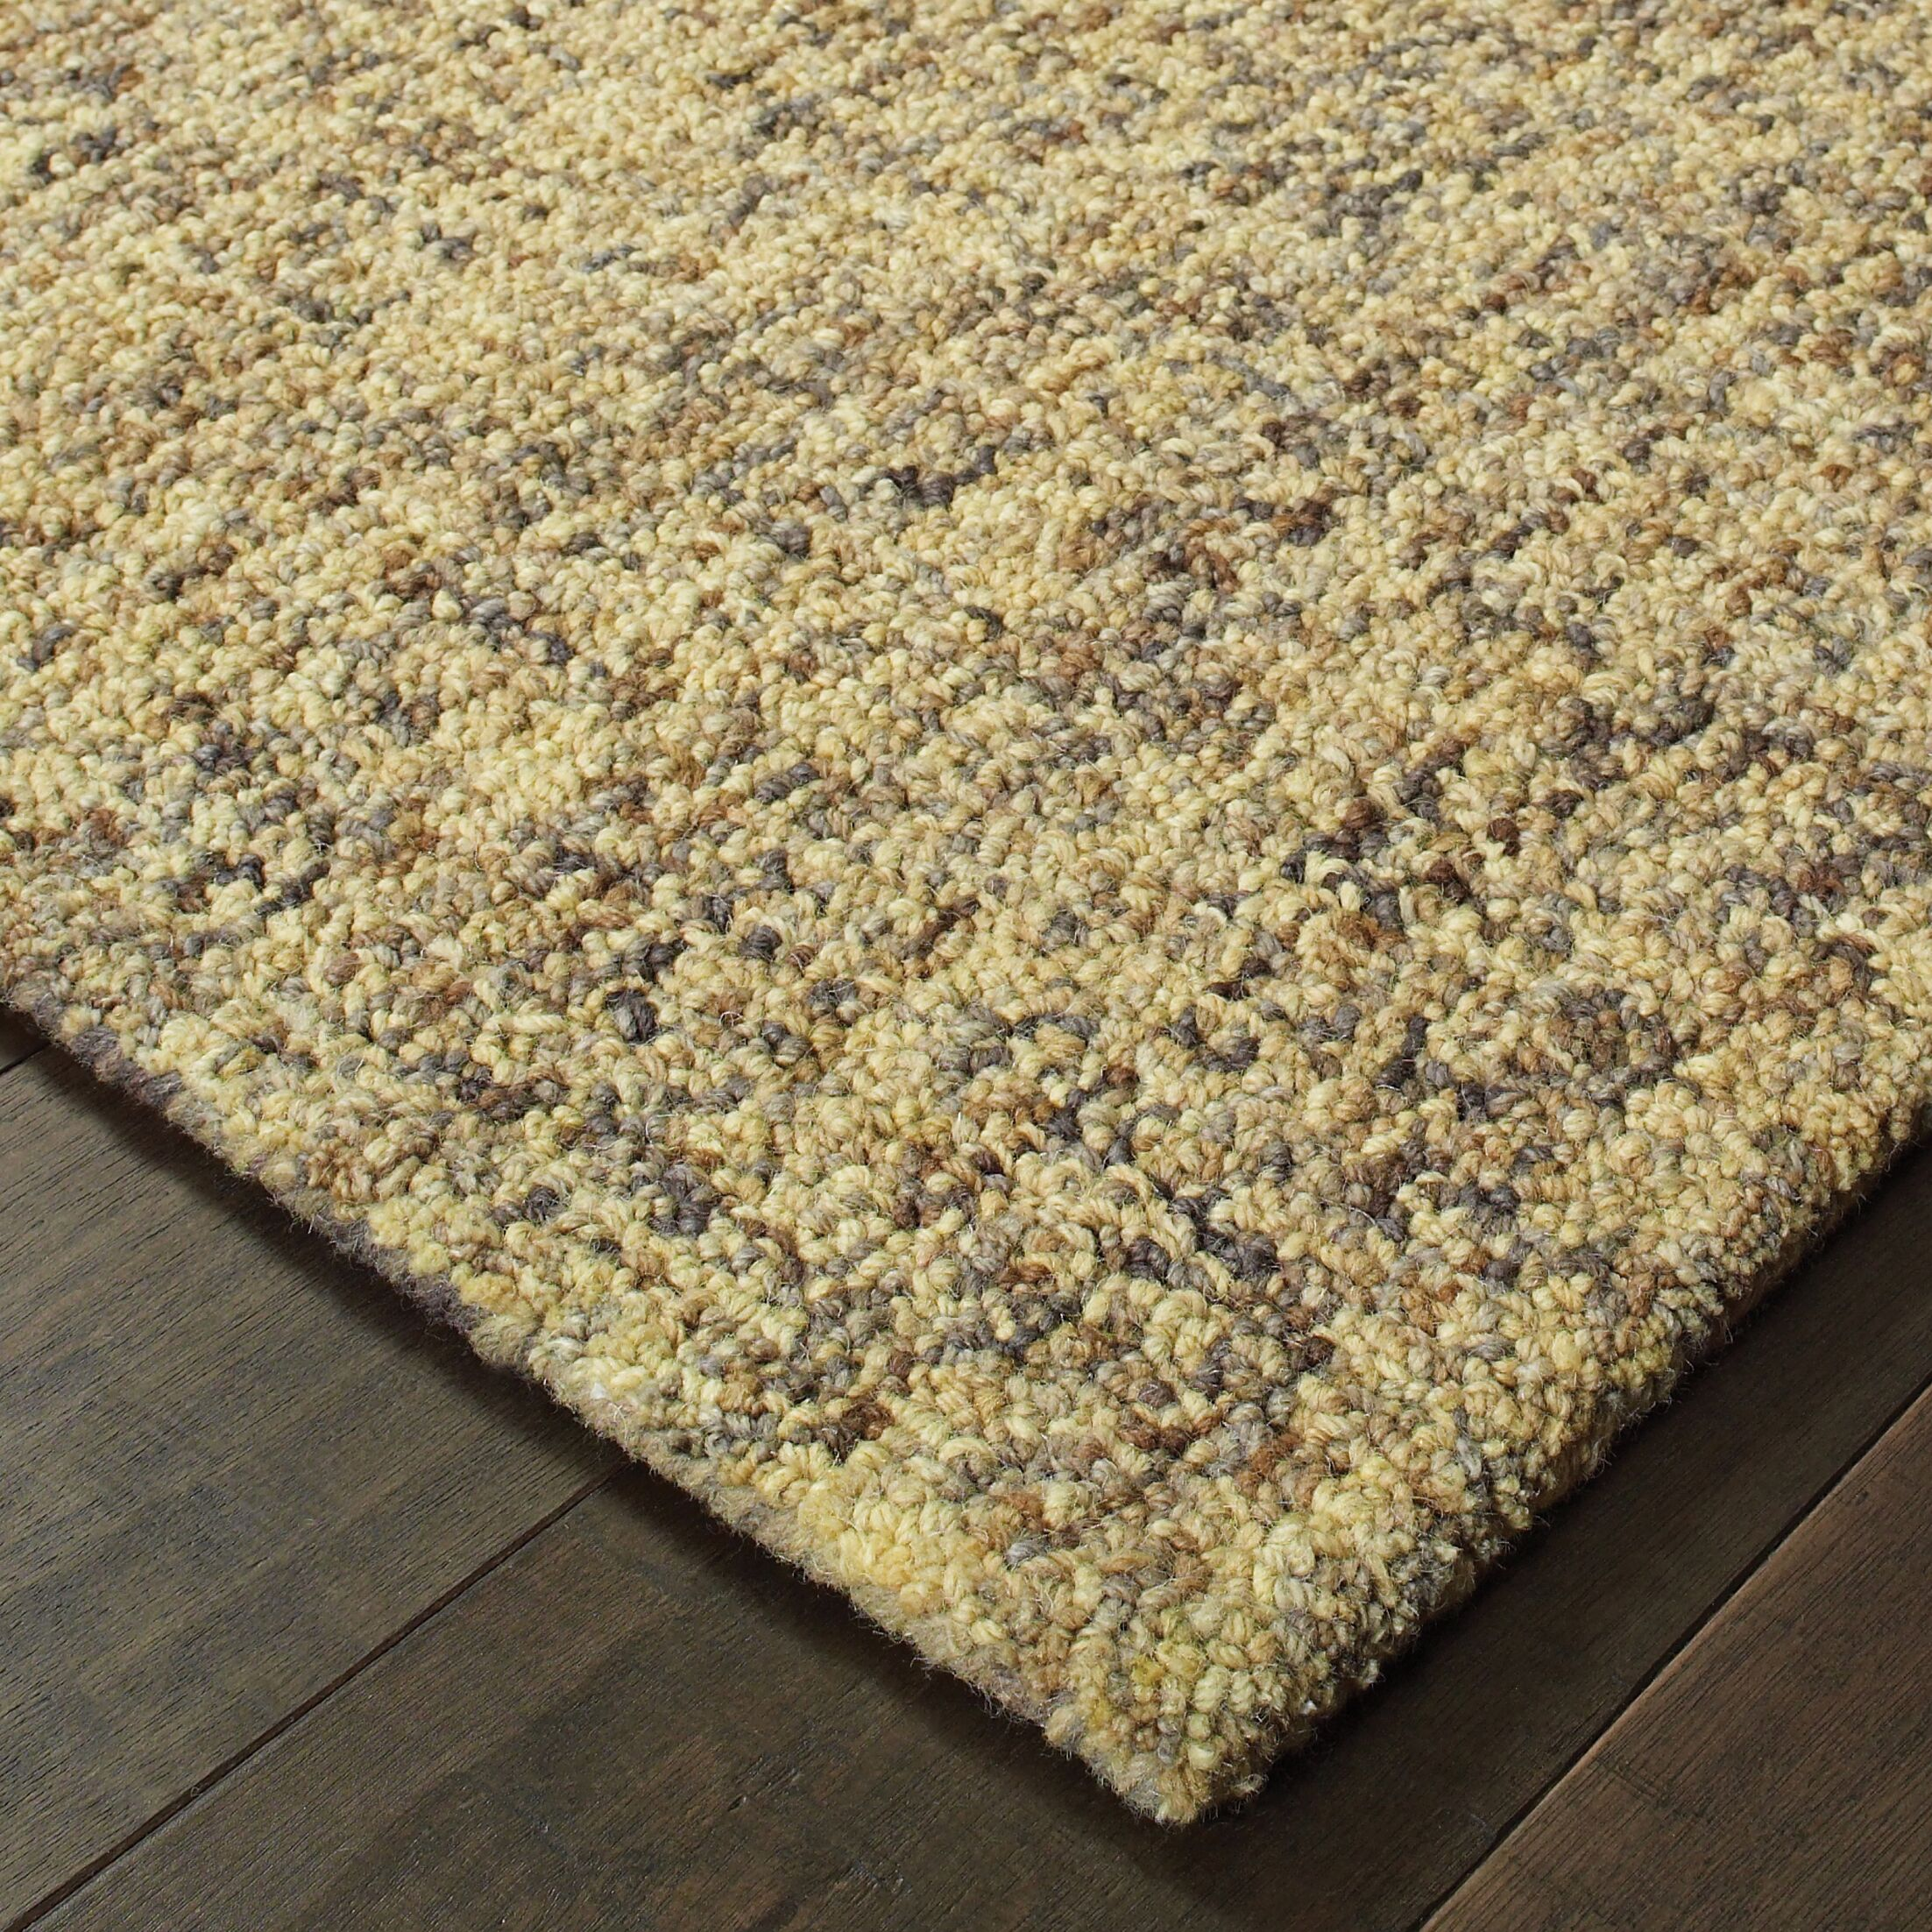 Laguerre Rustic Shades Boucle Hand-Hooked Wool Gold Area Rug Rug Size: Rectangle 8' x 10'